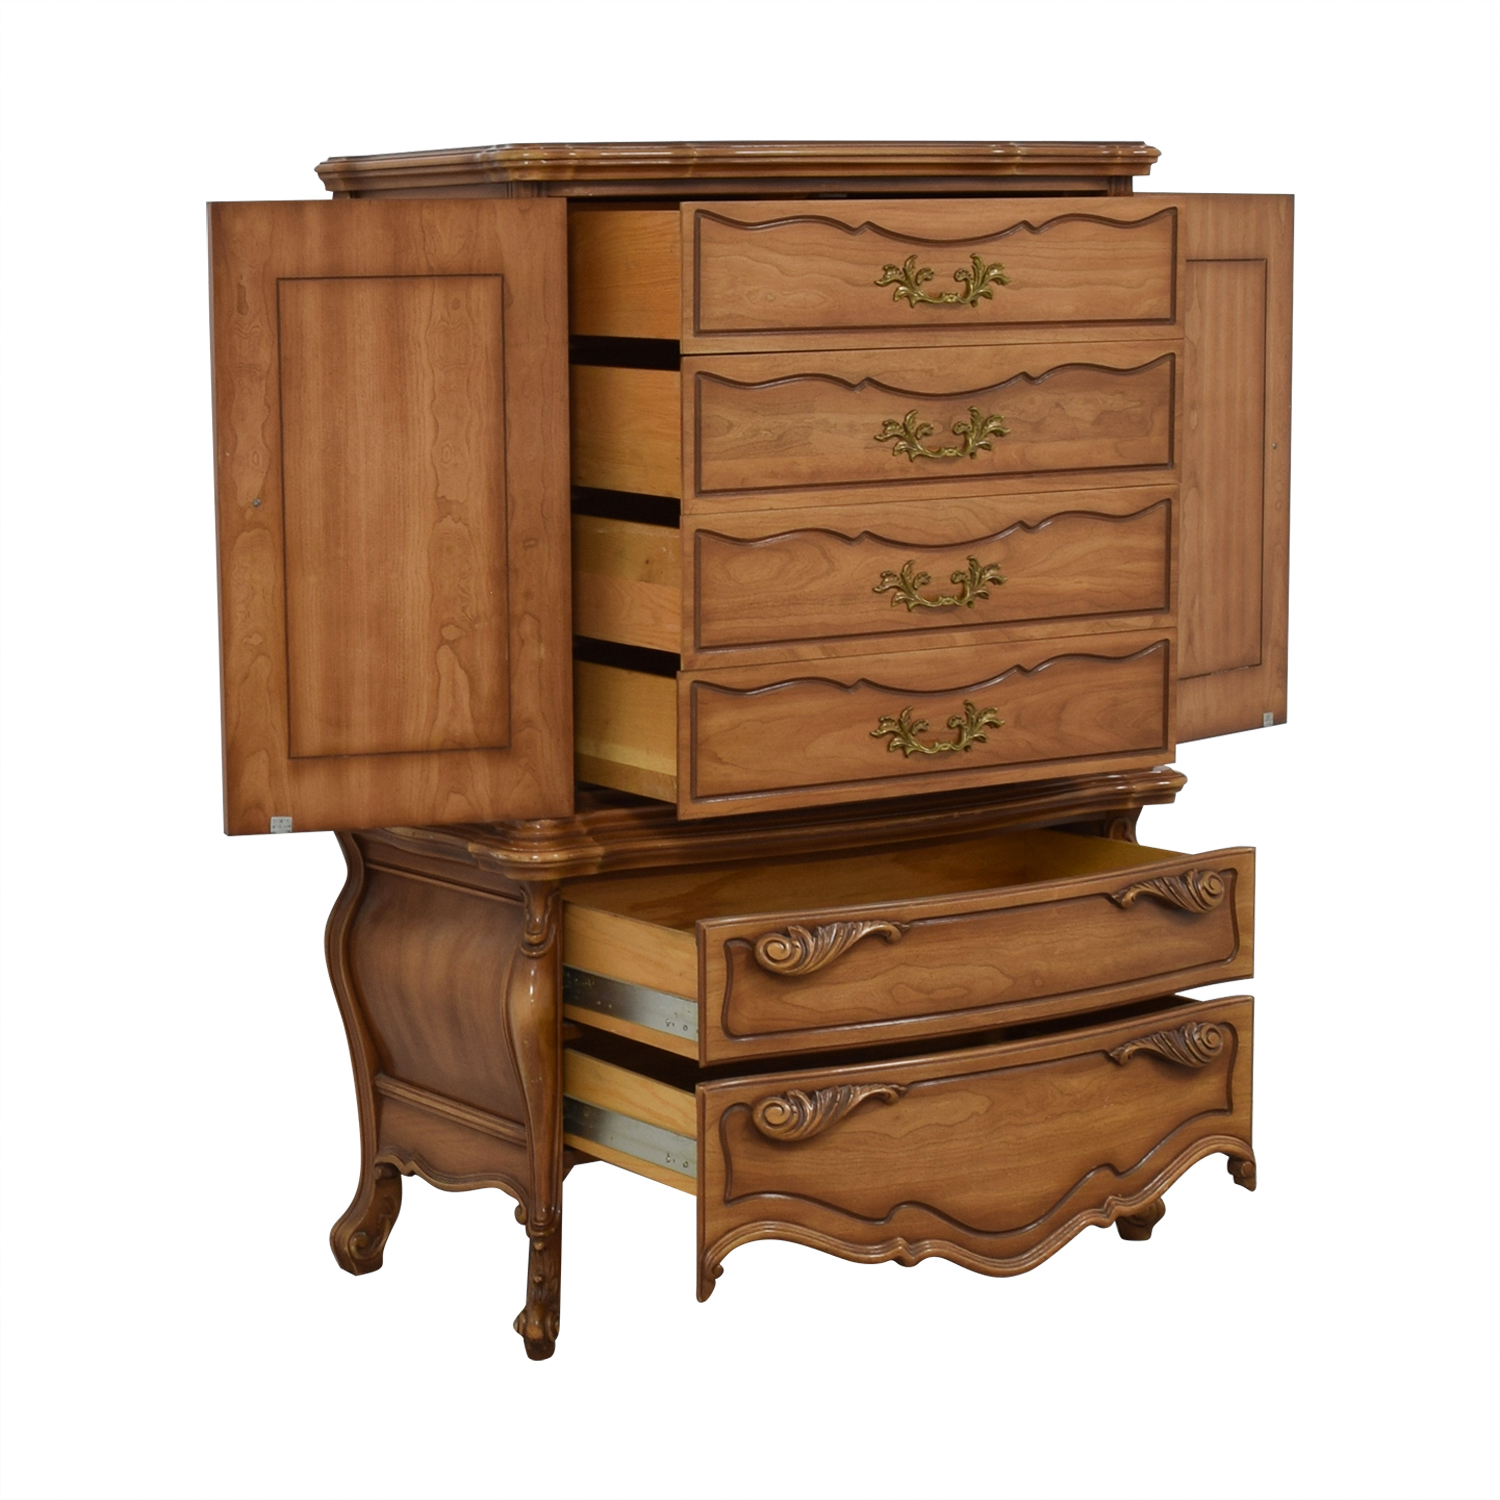 Dovetailed Carved Wood Chest of Drawers Armoire for sale